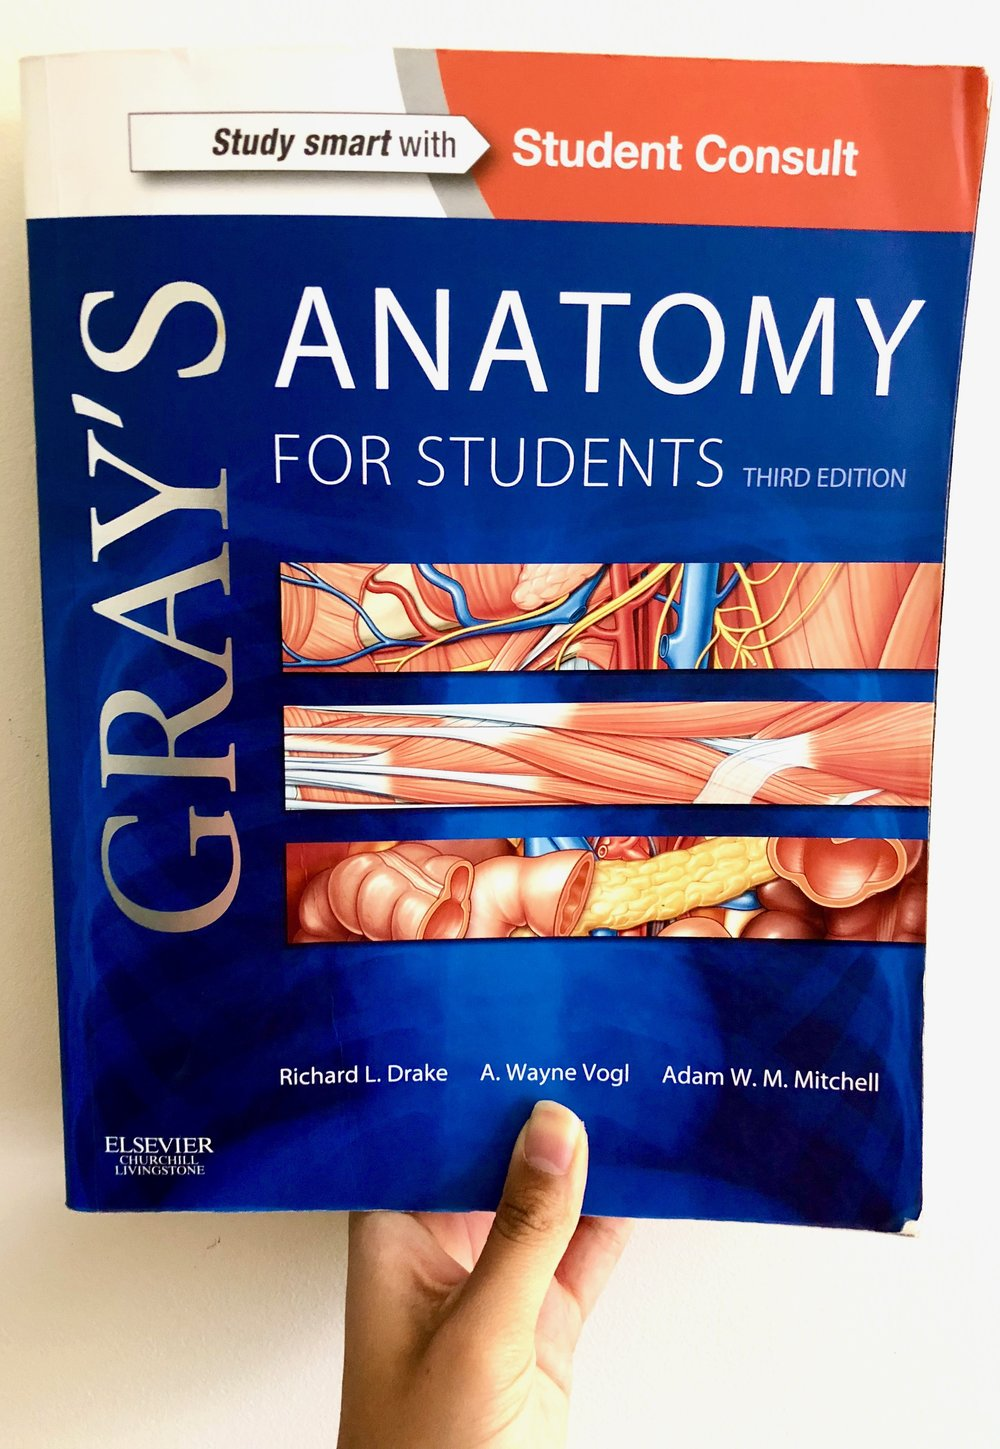 The 10 Best Resources to Learn and Master DPT School Anatomy ...